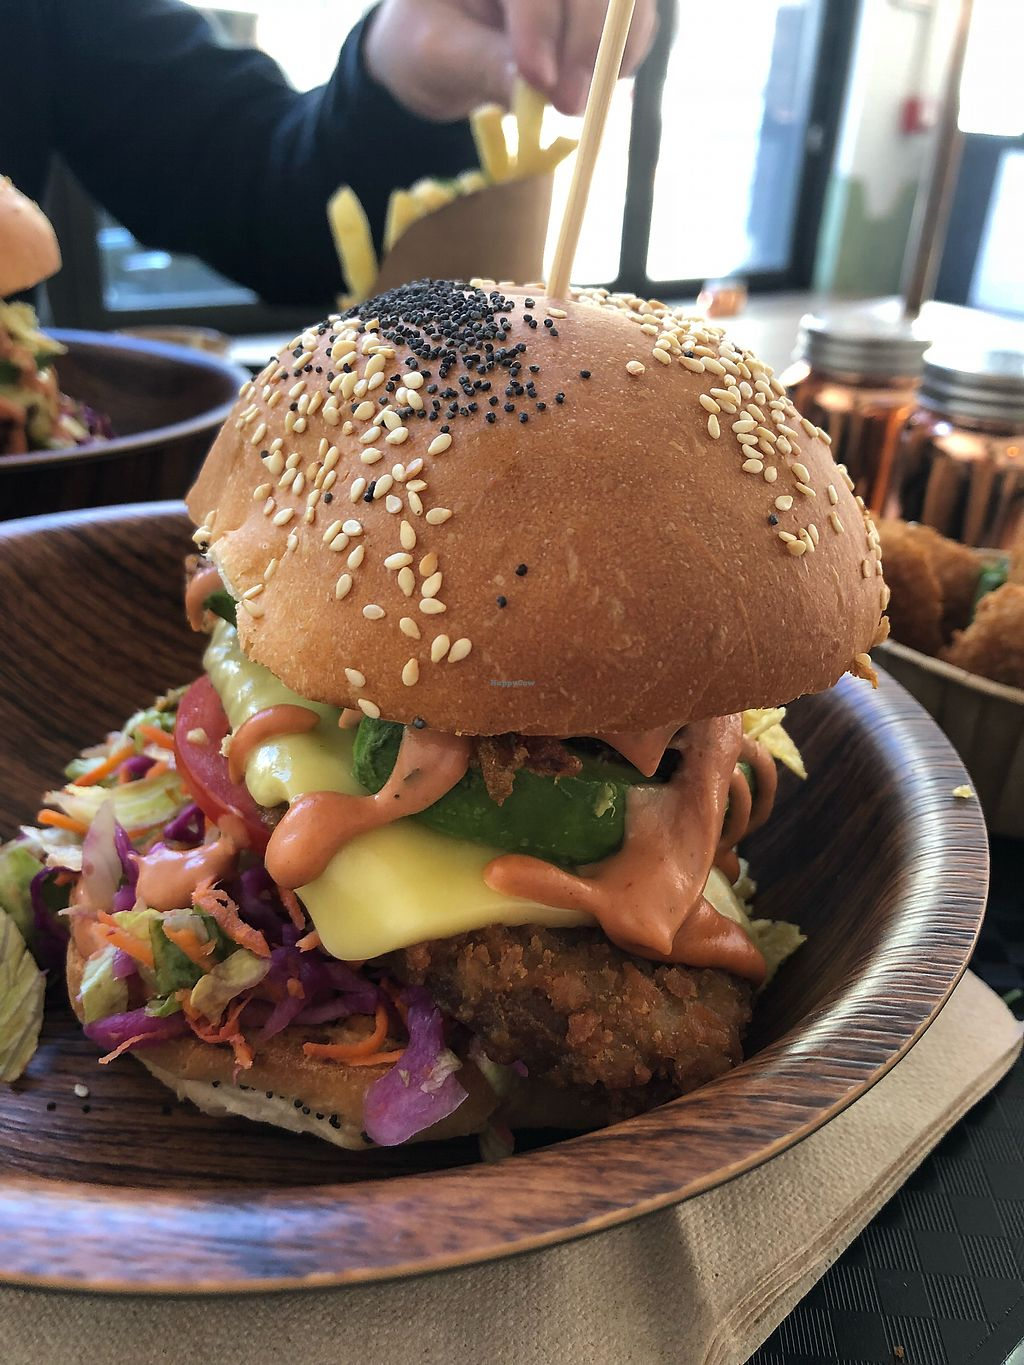 """Photo of Lekker Vegan  by <a href=""""/members/profile/lmd06"""">lmd06</a> <br/>Crispy burger  <br/> March 16, 2018  - <a href='/contact/abuse/image/104251/371391'>Report</a>"""